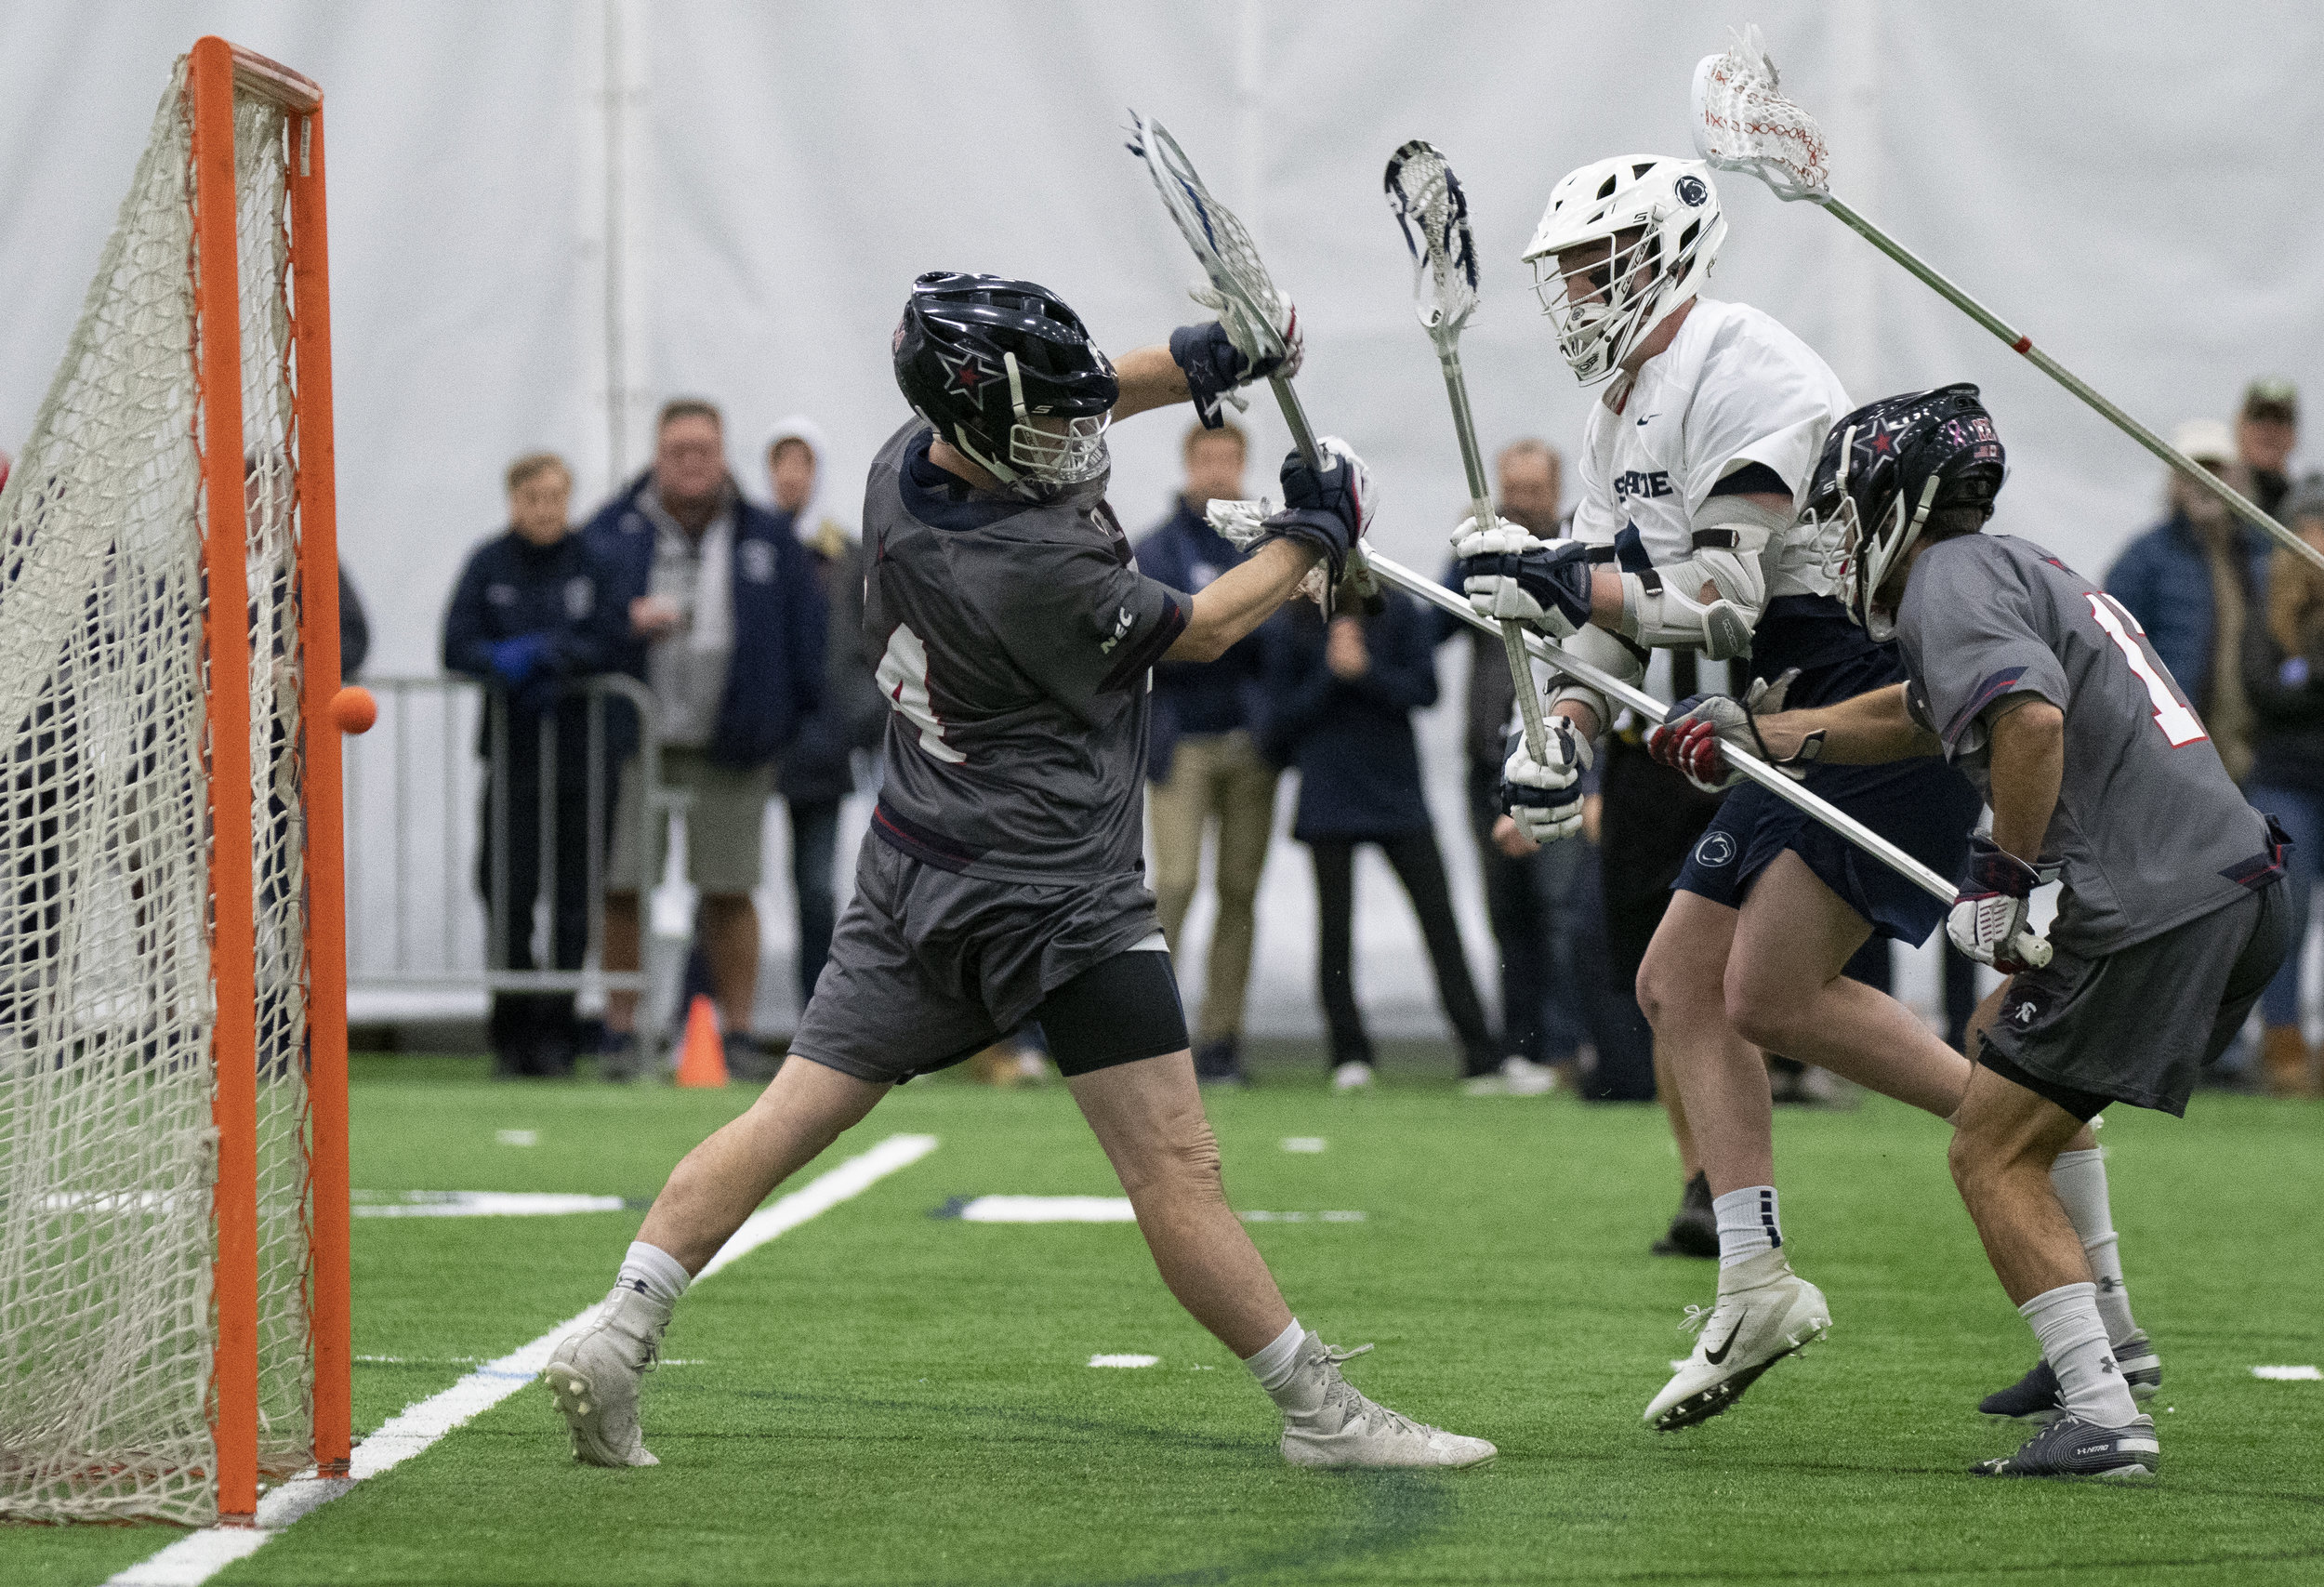 Attacker Mac O'Keefe (3) scores a goal during the men's lacrosse game against Robert Morris at Holuba Hall on Feb. 9, 2019. The Nittany Lions score a program record 27 points to rout Robert Morris 27-10. | Photo by: Noah Riffe